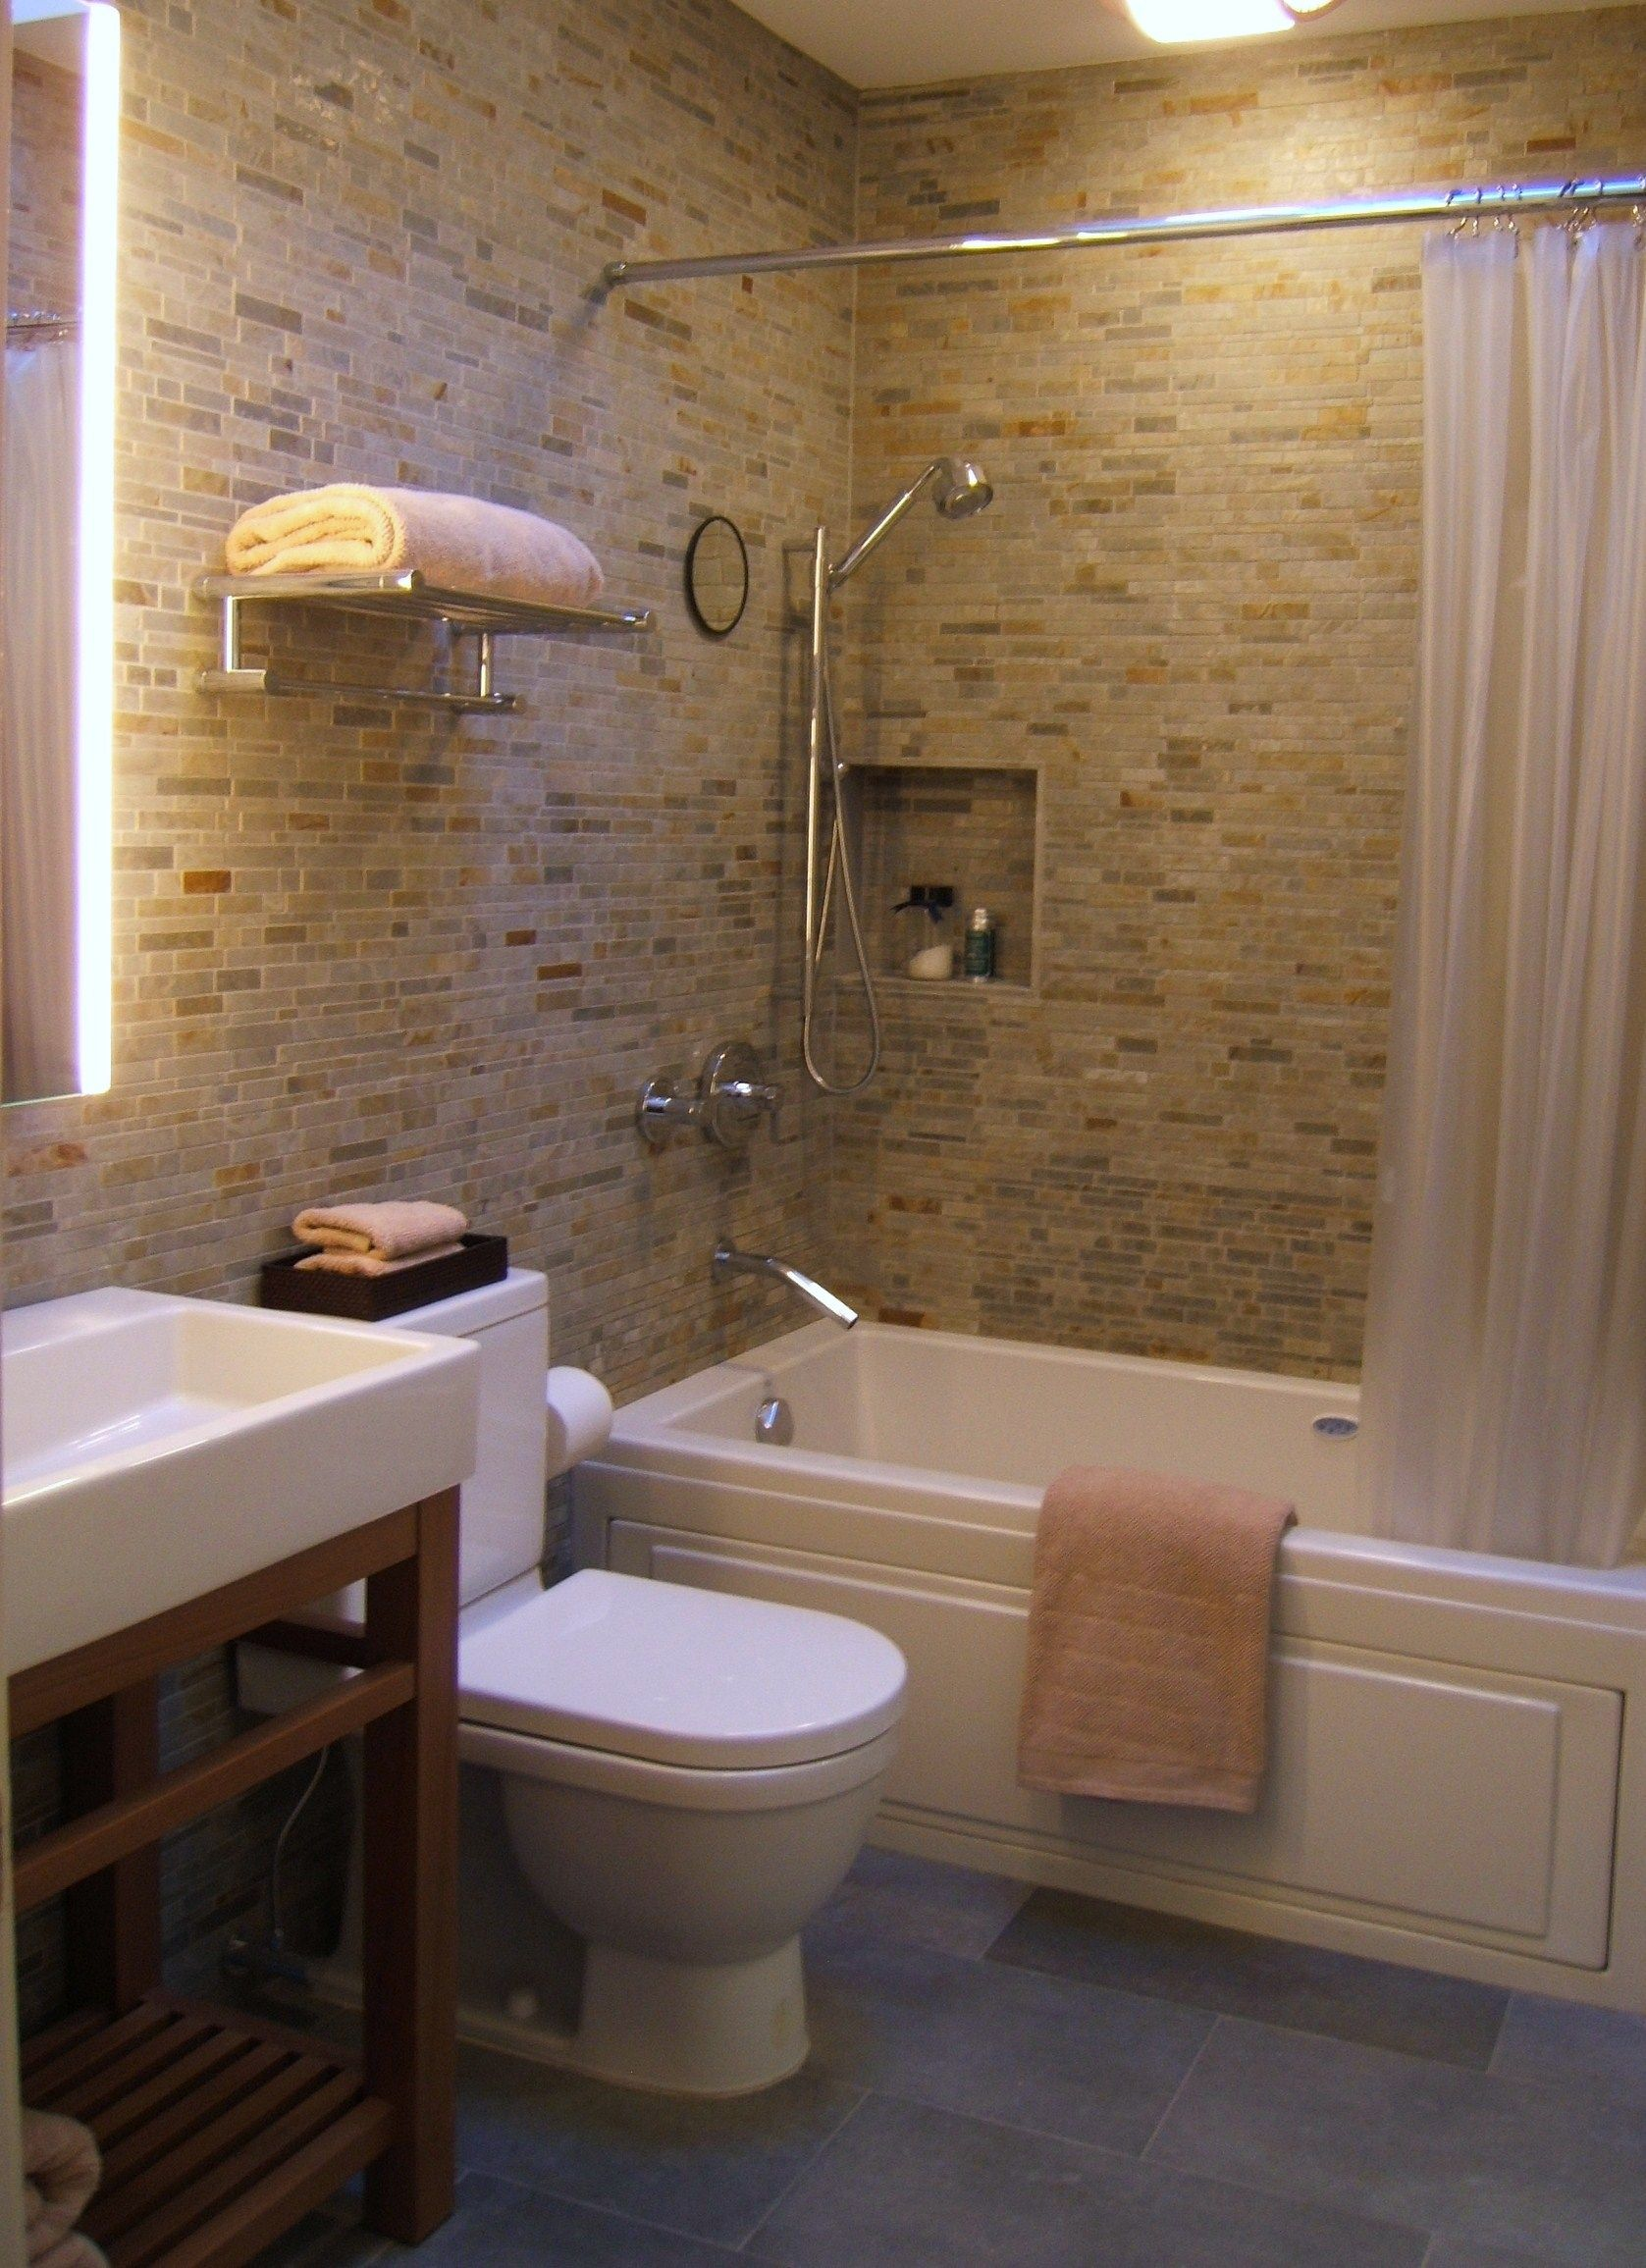 Small bathroom designs south africa small bath Bathroom design for condominium